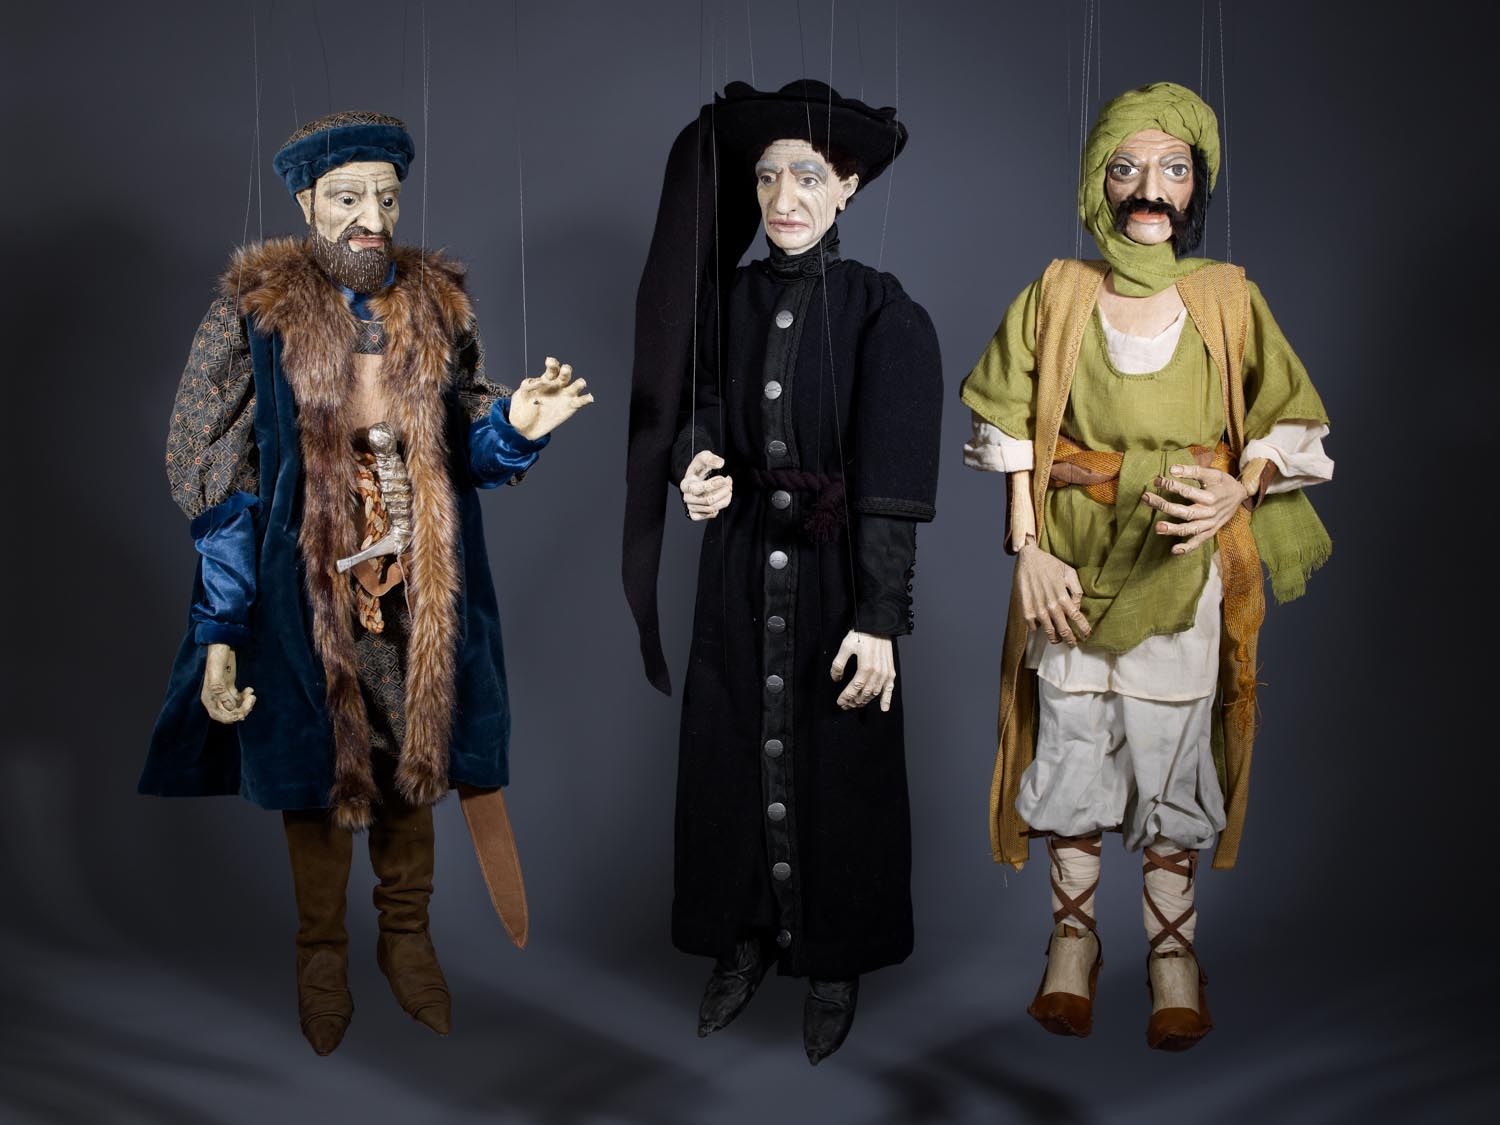 """Three characters from the Portuguese epic poem, """"Os Lusíadas""""made by Jorge Cerqueira. Photographed for Dr. Anthony Shelton's book Heaven & Hell. MOA CAT: 2956/295 a-b, 2956/296, 2956/299 c.2012 Portugal: Lisboa, Sintra"""